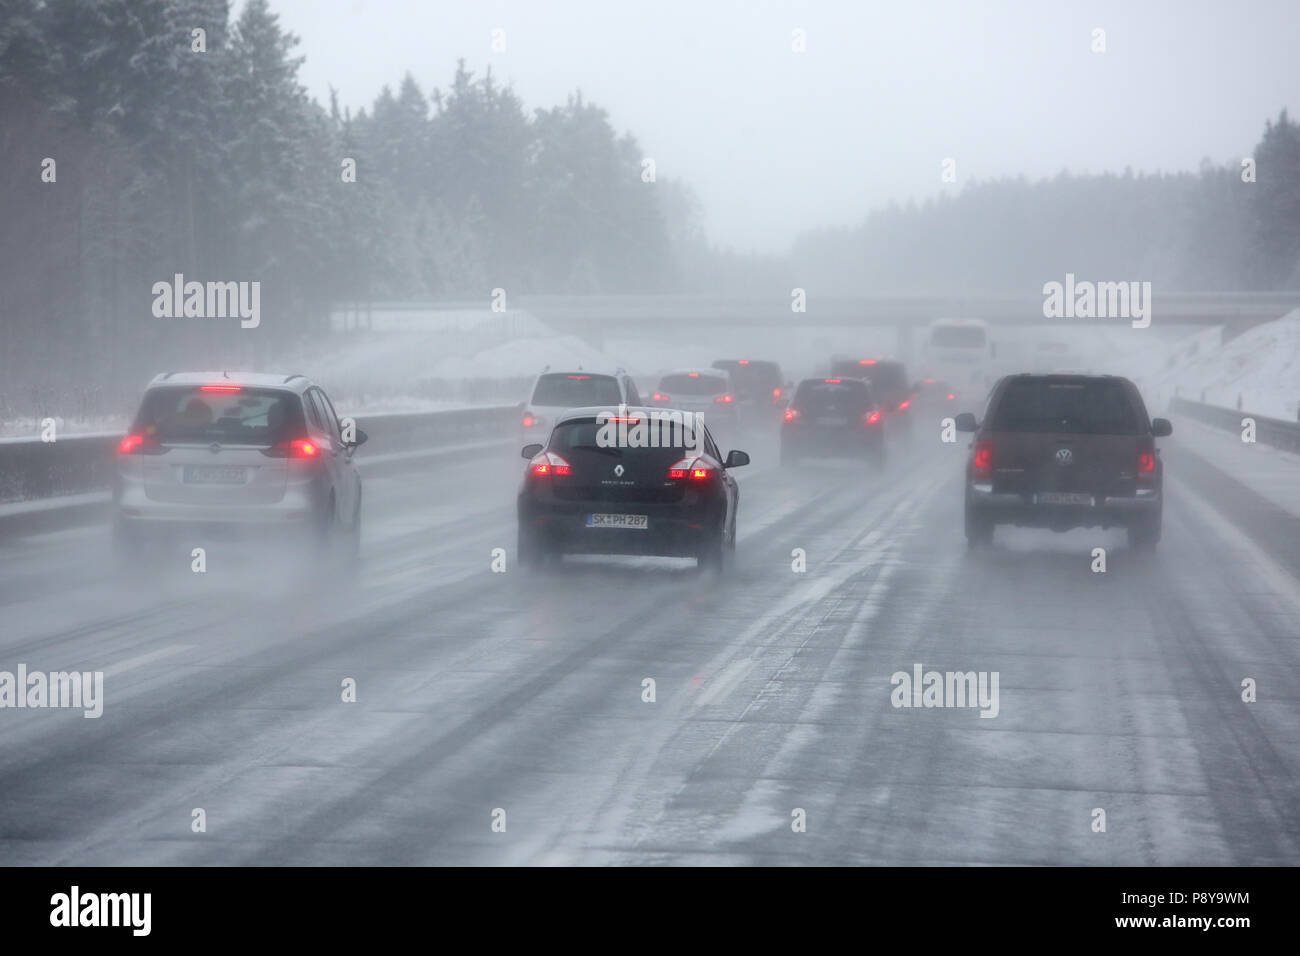 Droyssig, Germany, poor visibility on the A9 motorway in snowfall Stock Photo